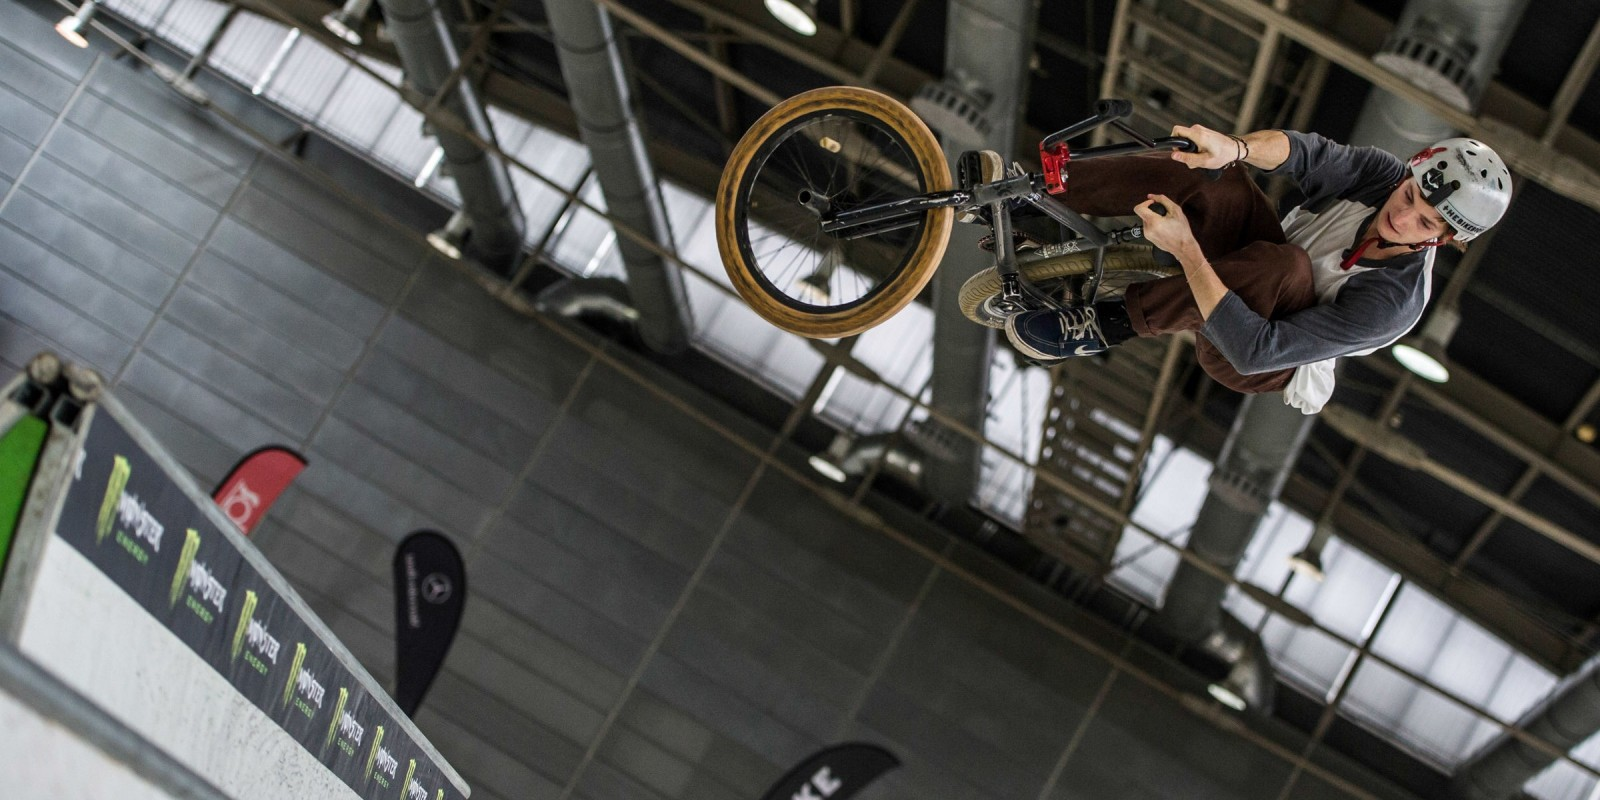 MERCEDES-BENZ GRAND BMX 2017 Czech BMX park championship in Brno